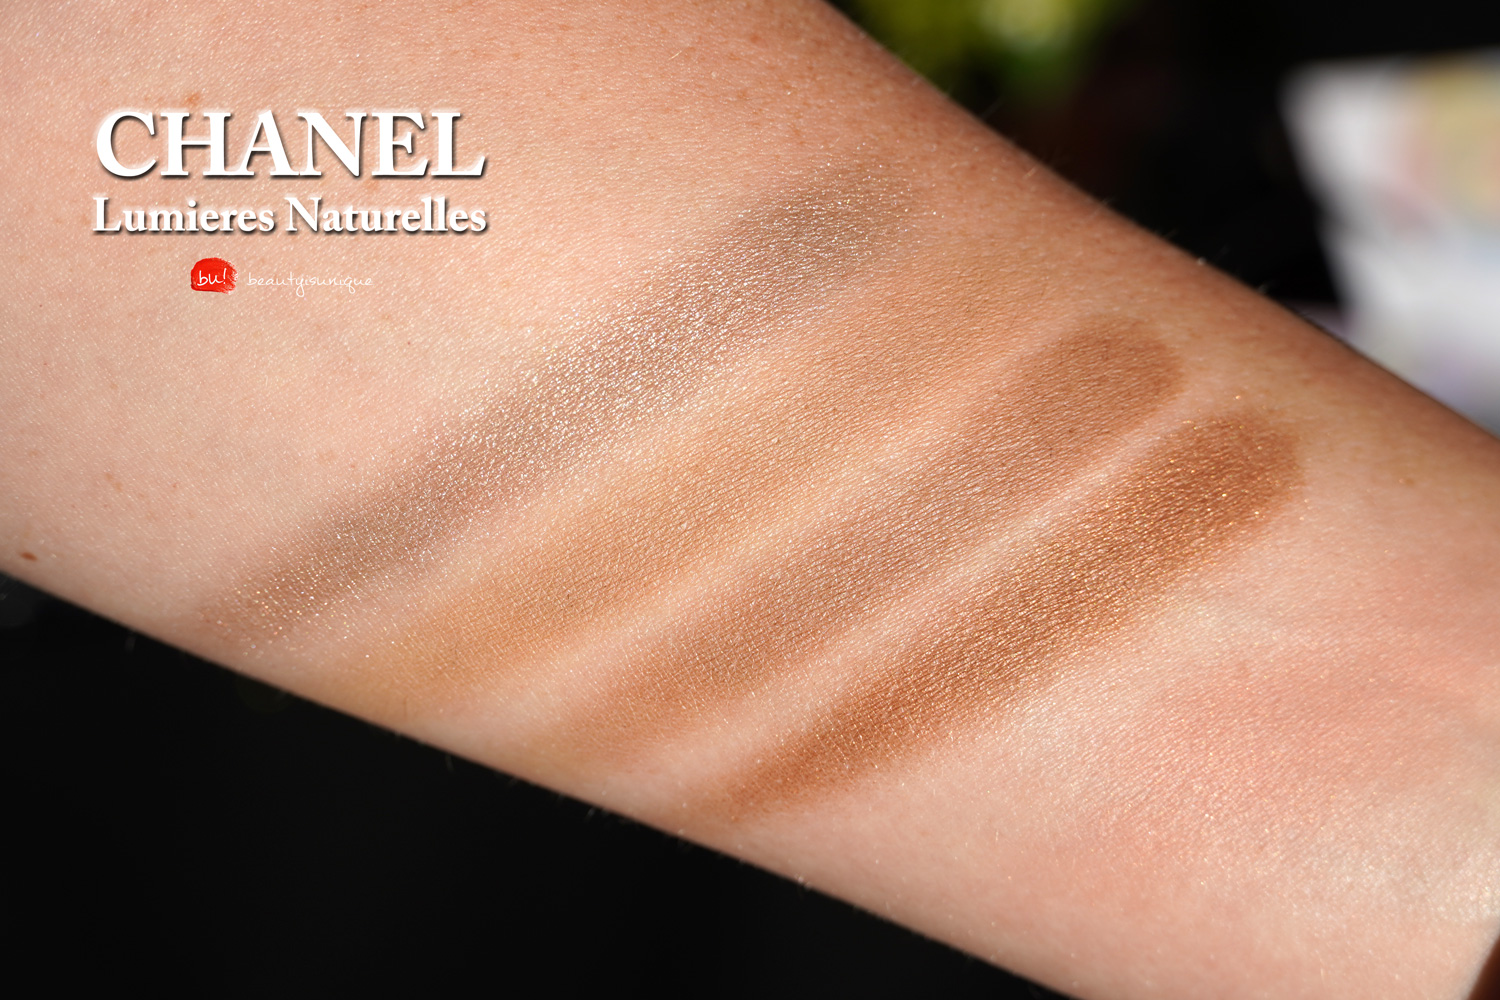 chanel-lumieres-naturelles-swatches